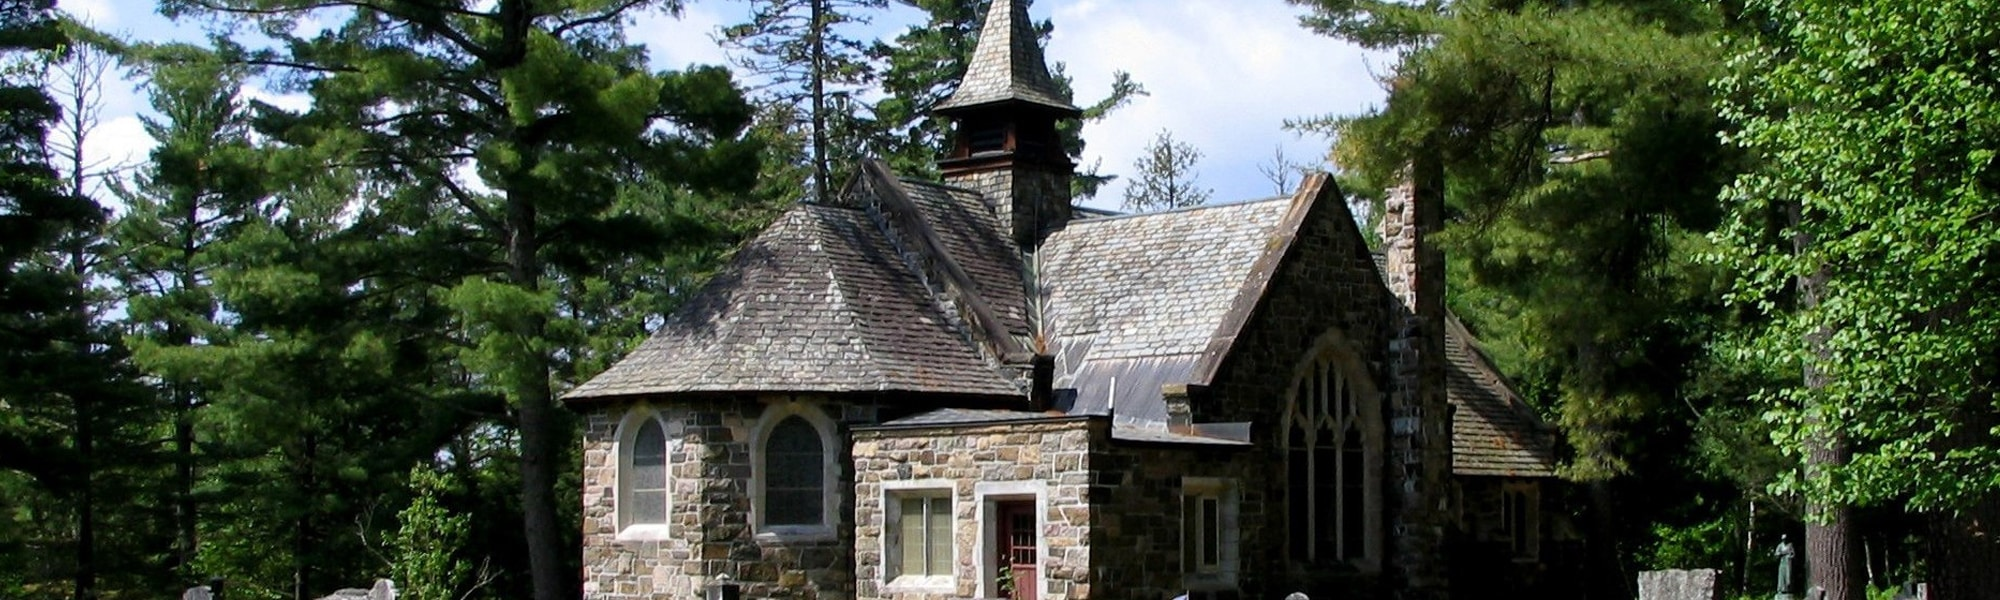 St. John in the Wilderness Church